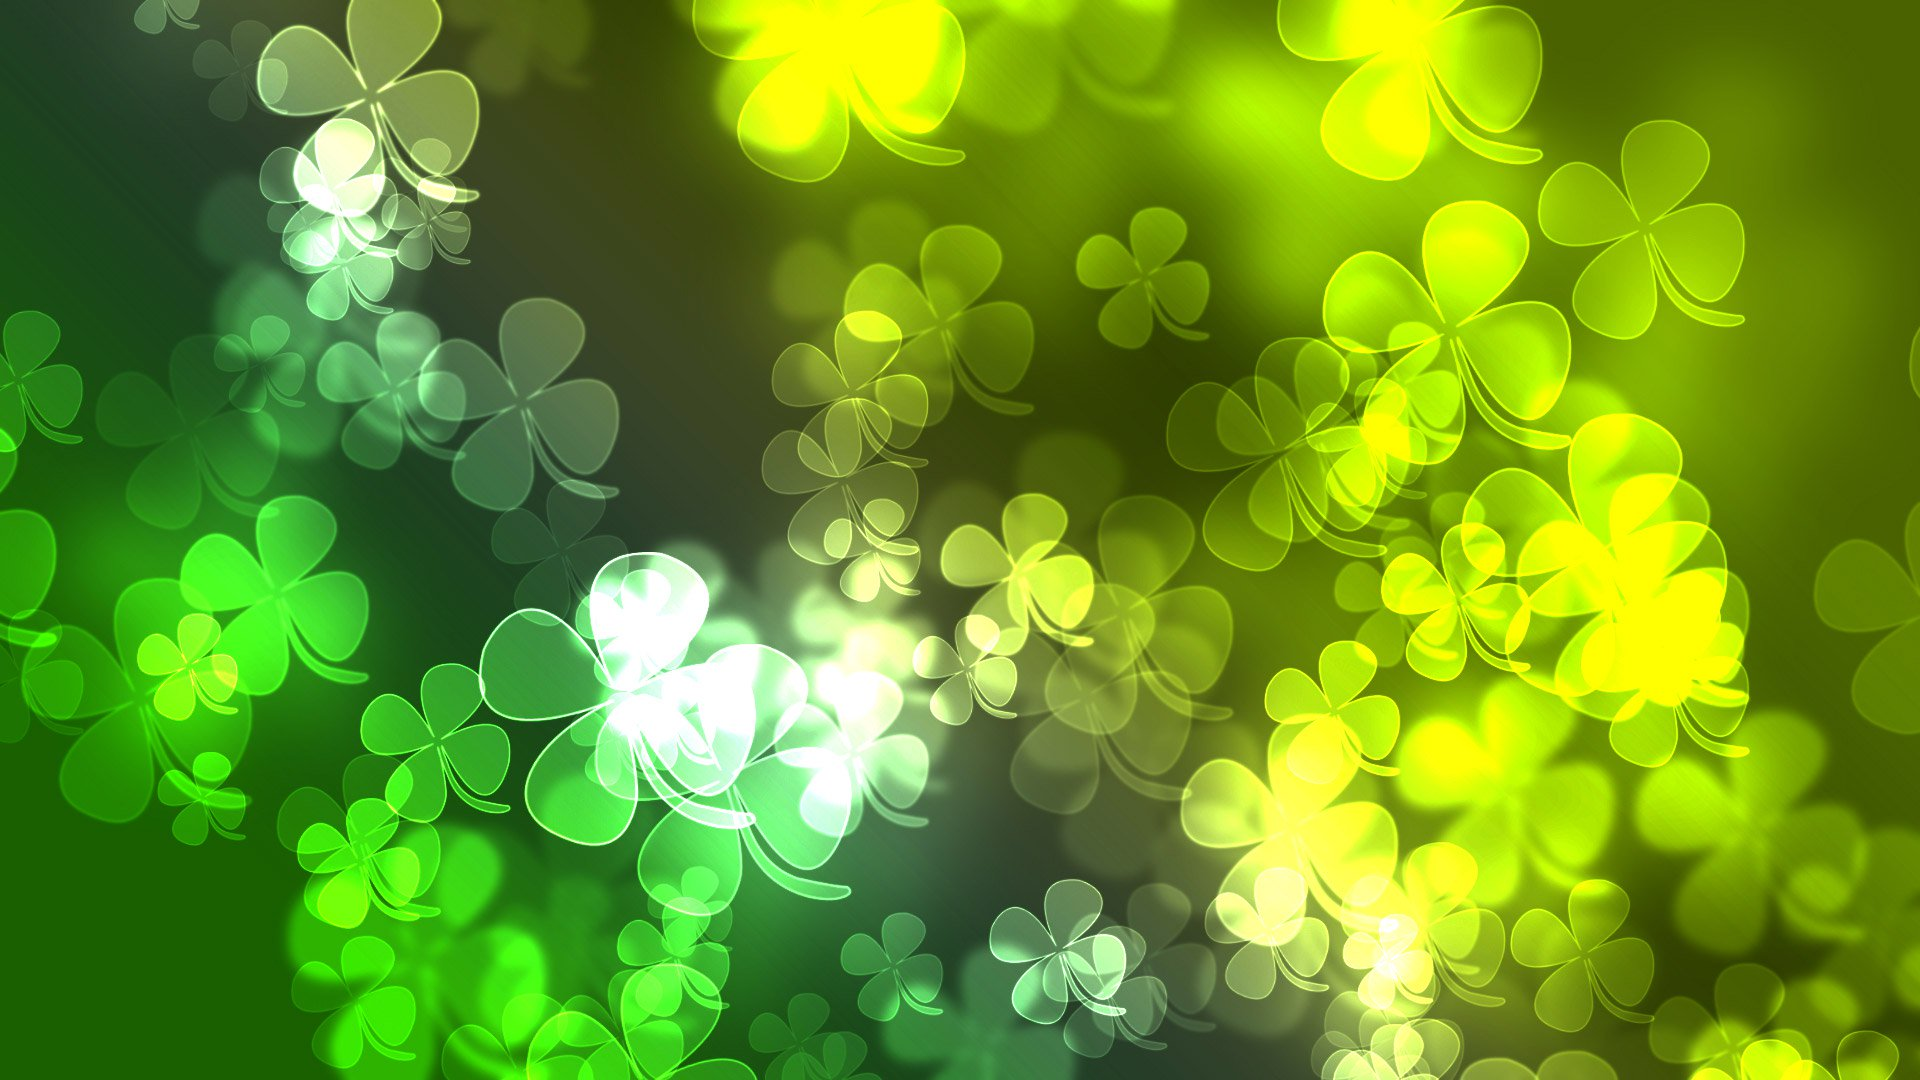 Pin St Patricks Day Wallpapers 1920x1080